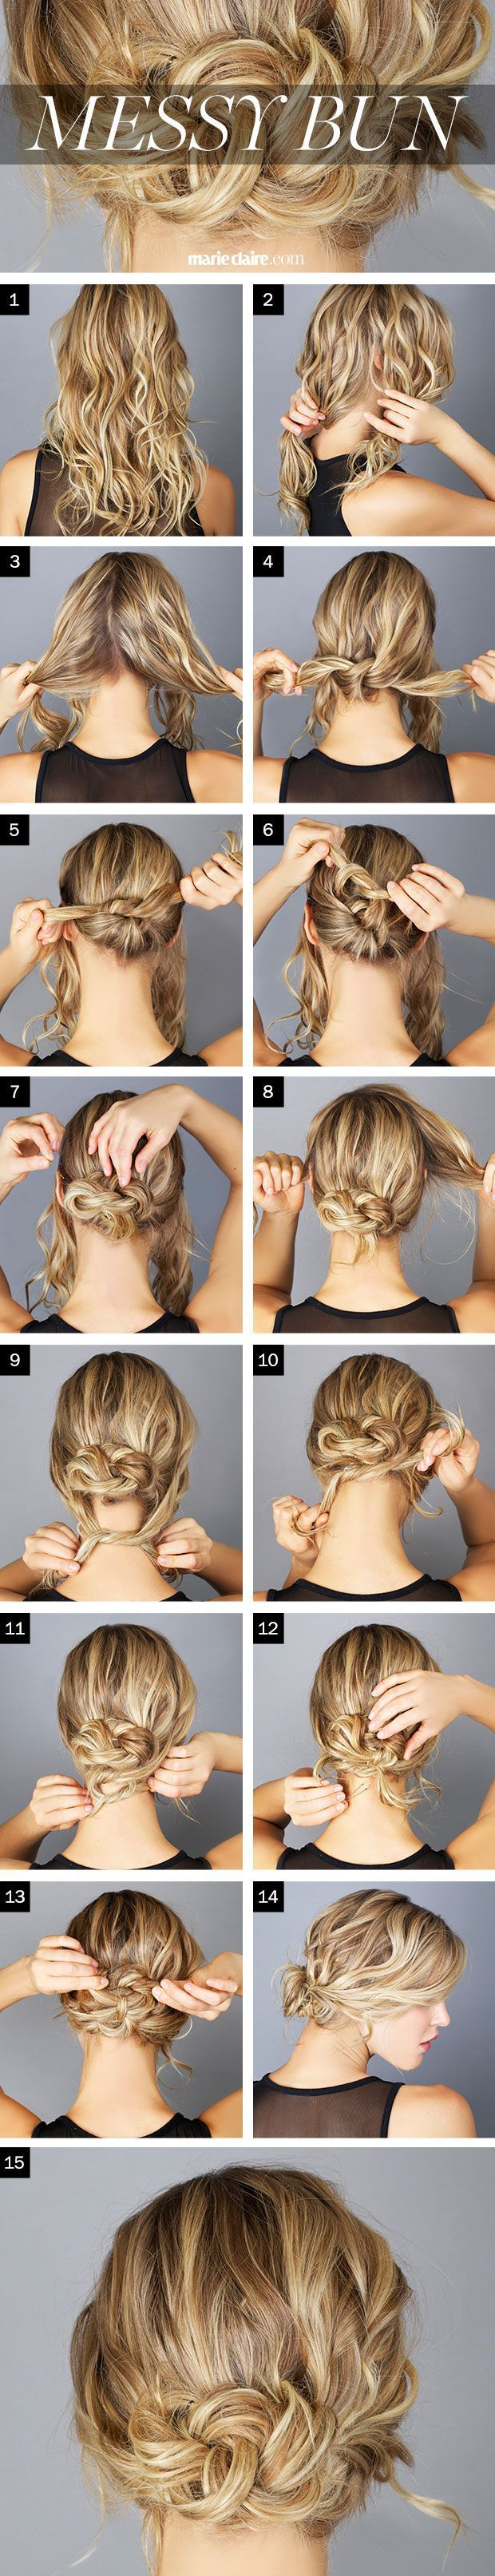 The steps to the perfect messy bun! Get inspired with haircare from Duane Reade.